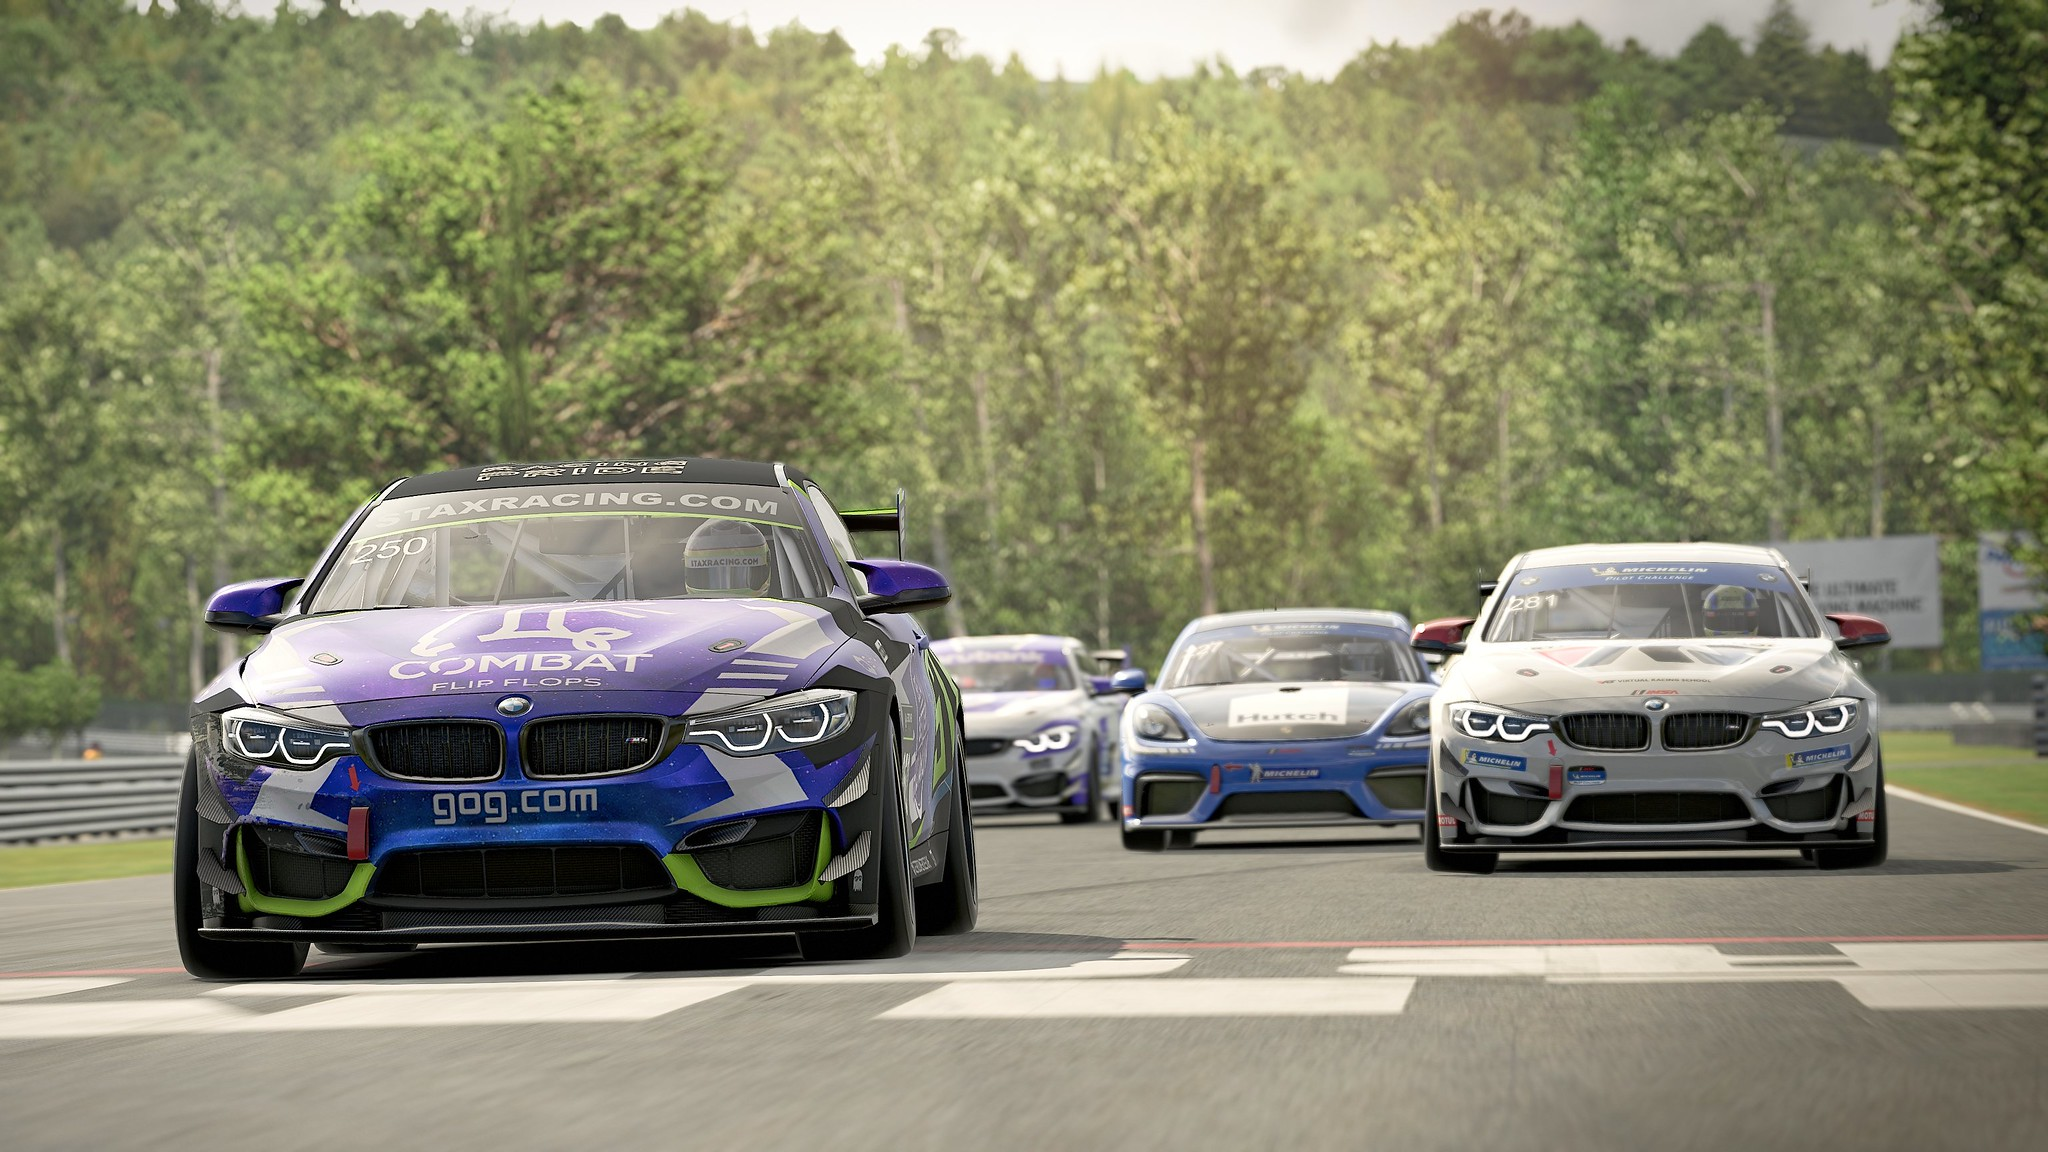 Apex Racing Academy GT4 VRS Super Series | Round 4 at Lime Rock Park